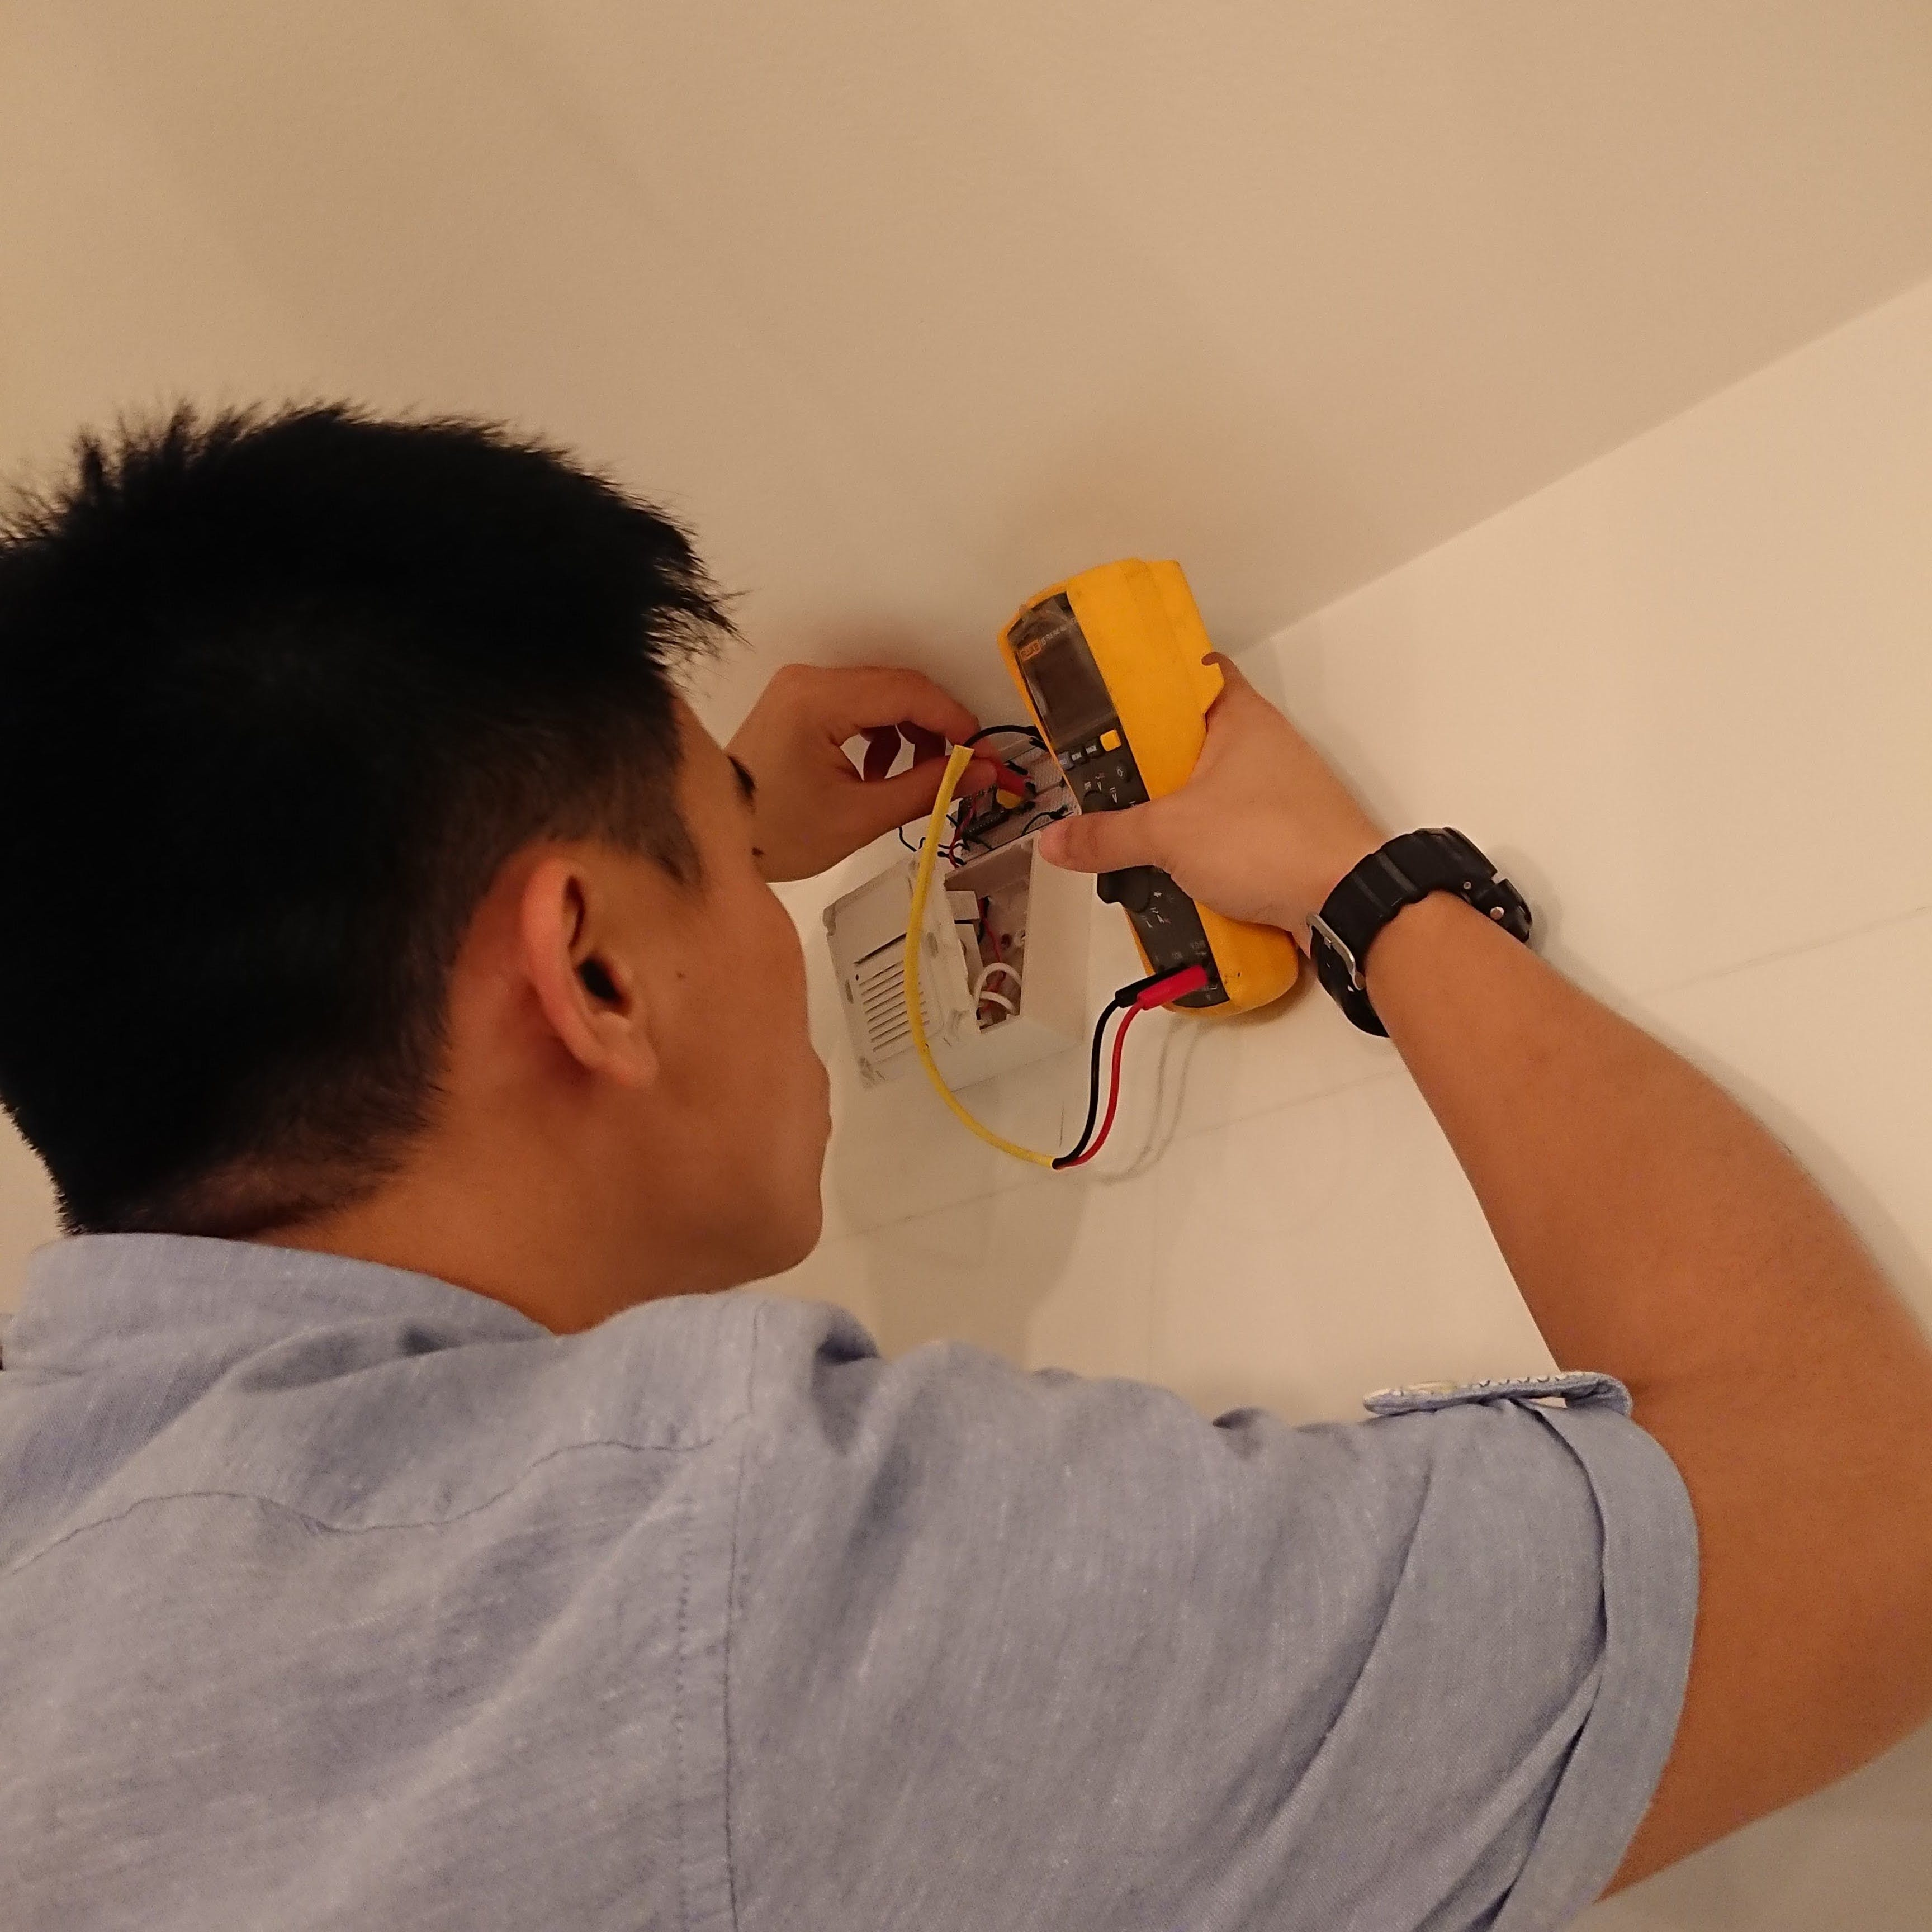 Kenneth troubleshooting the connectivity